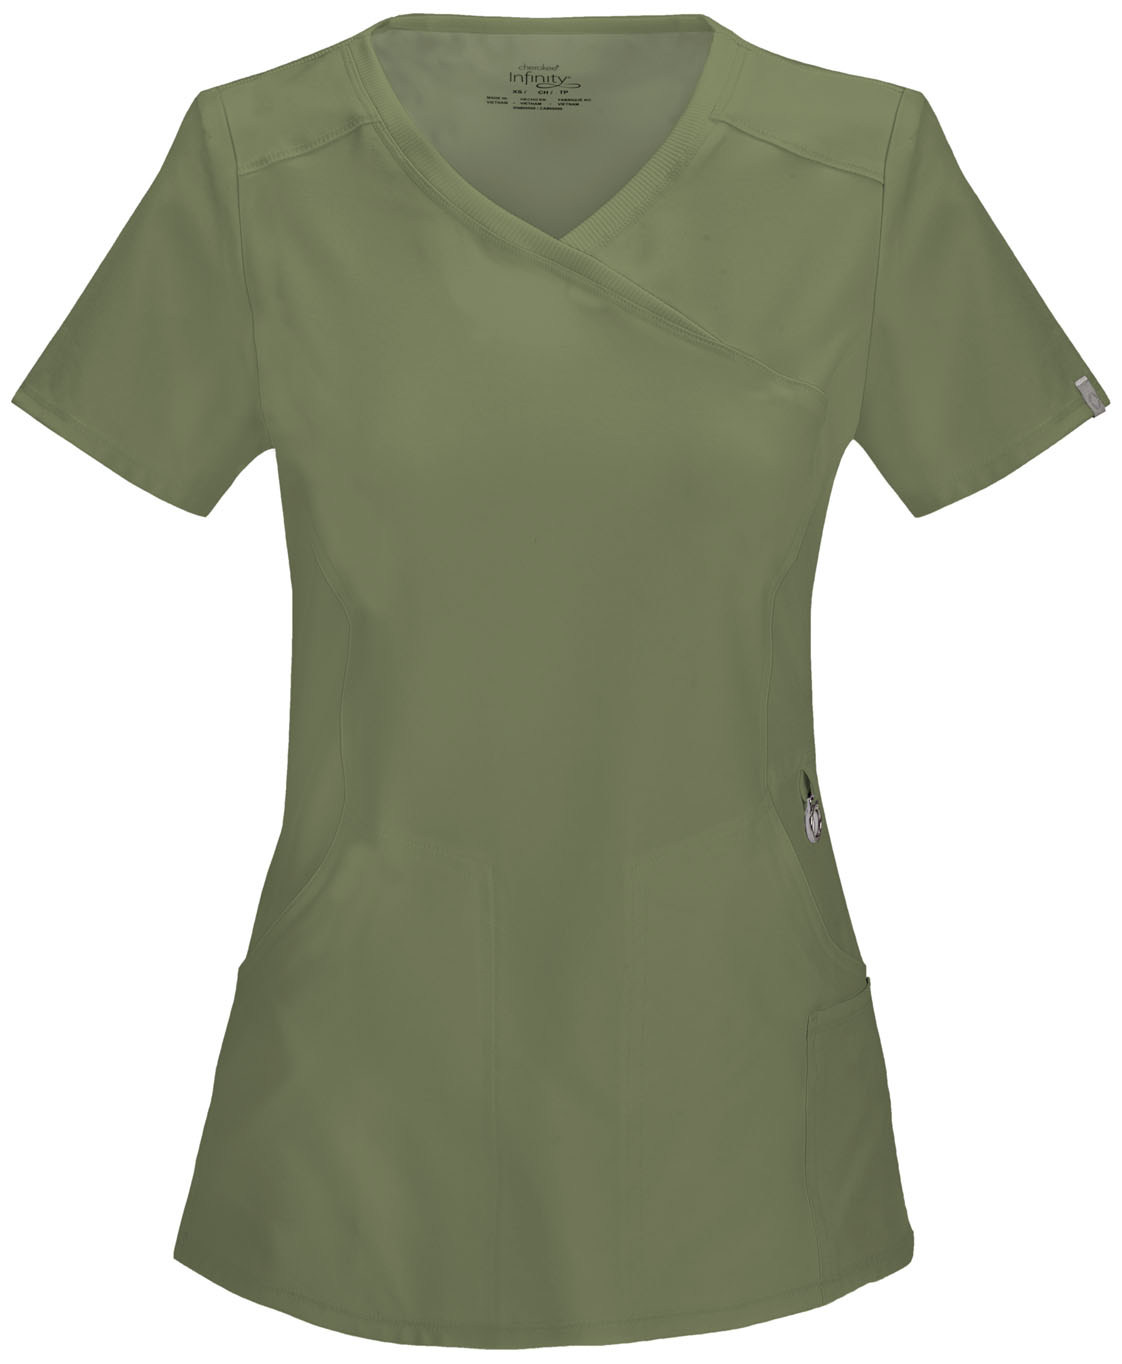 0105f95f6a7 Infinity Mock Wrap Top in Olive 2625A-OLPS from Scrubs Express